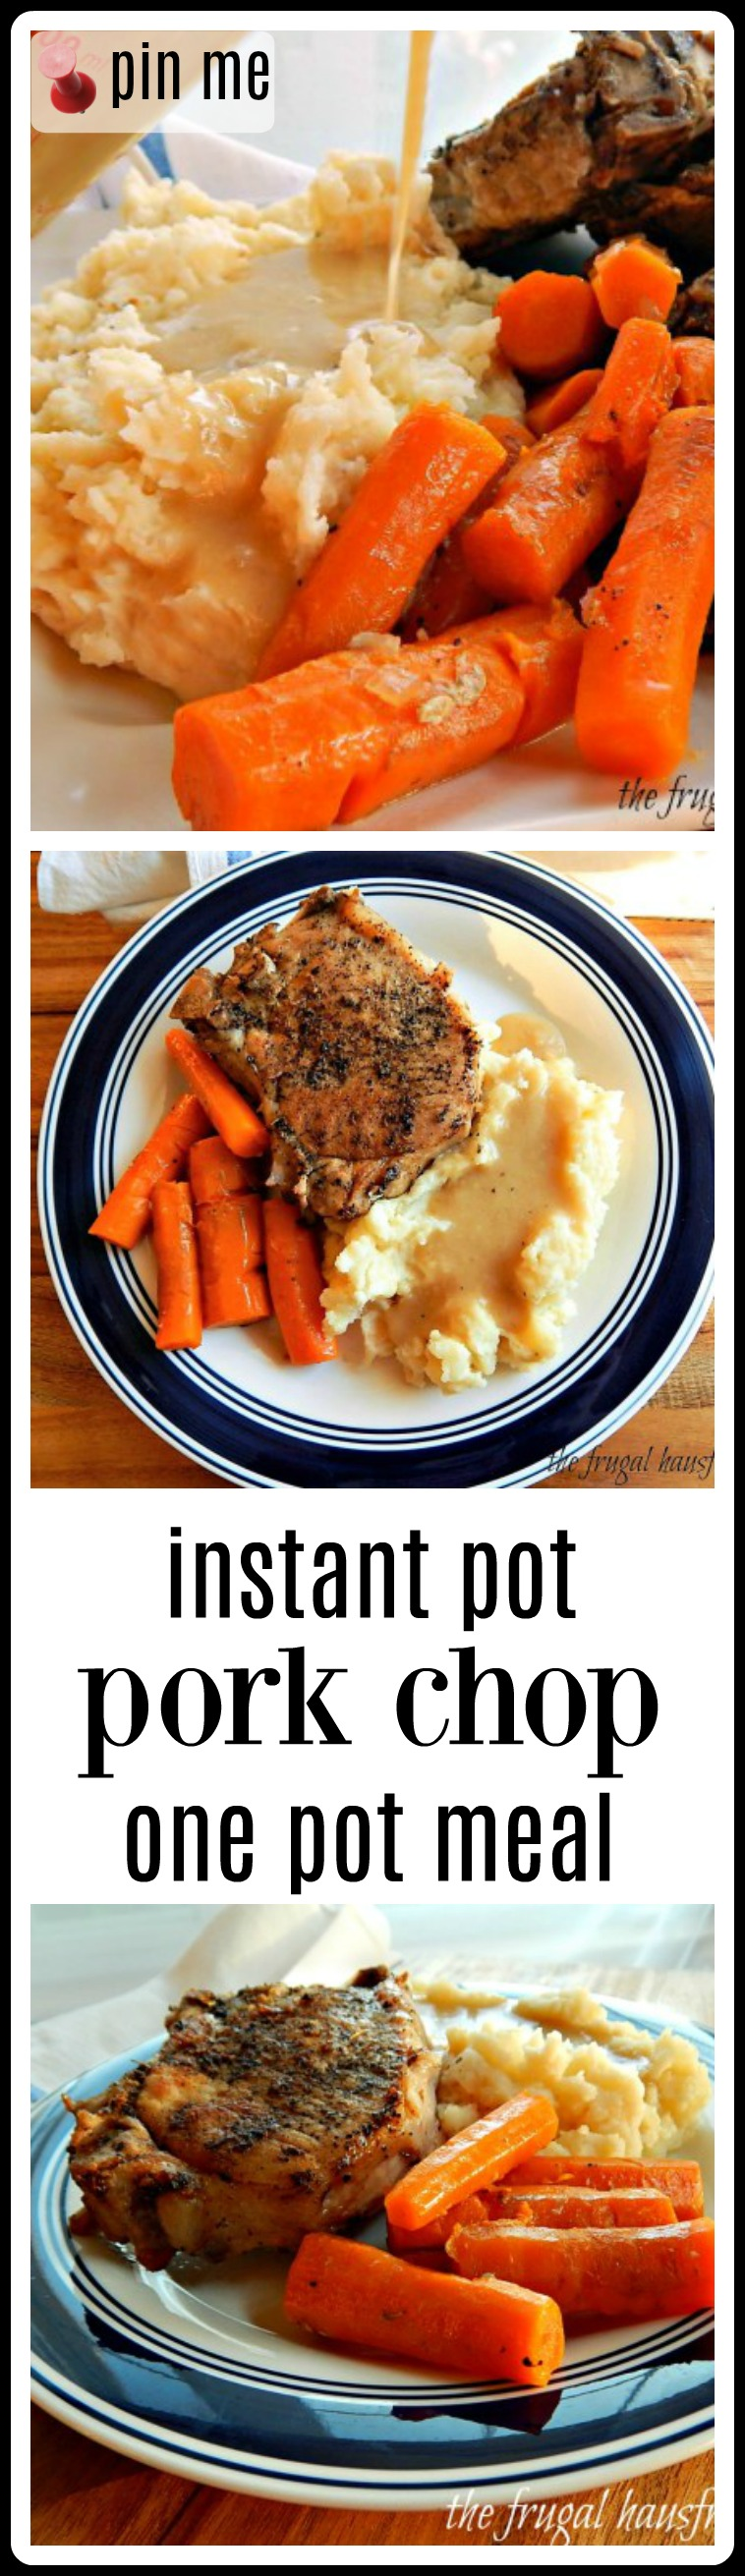 This Instant Pot Pork Chop One-Pot Meal is a fave of my folks, who are in their 80's & 90's! Big Midwestern pork chops, mashed potatoes & cream gravy & tender carrots! Midwestern Comfort perfect for a blustery day. #InstantPotPorkChops